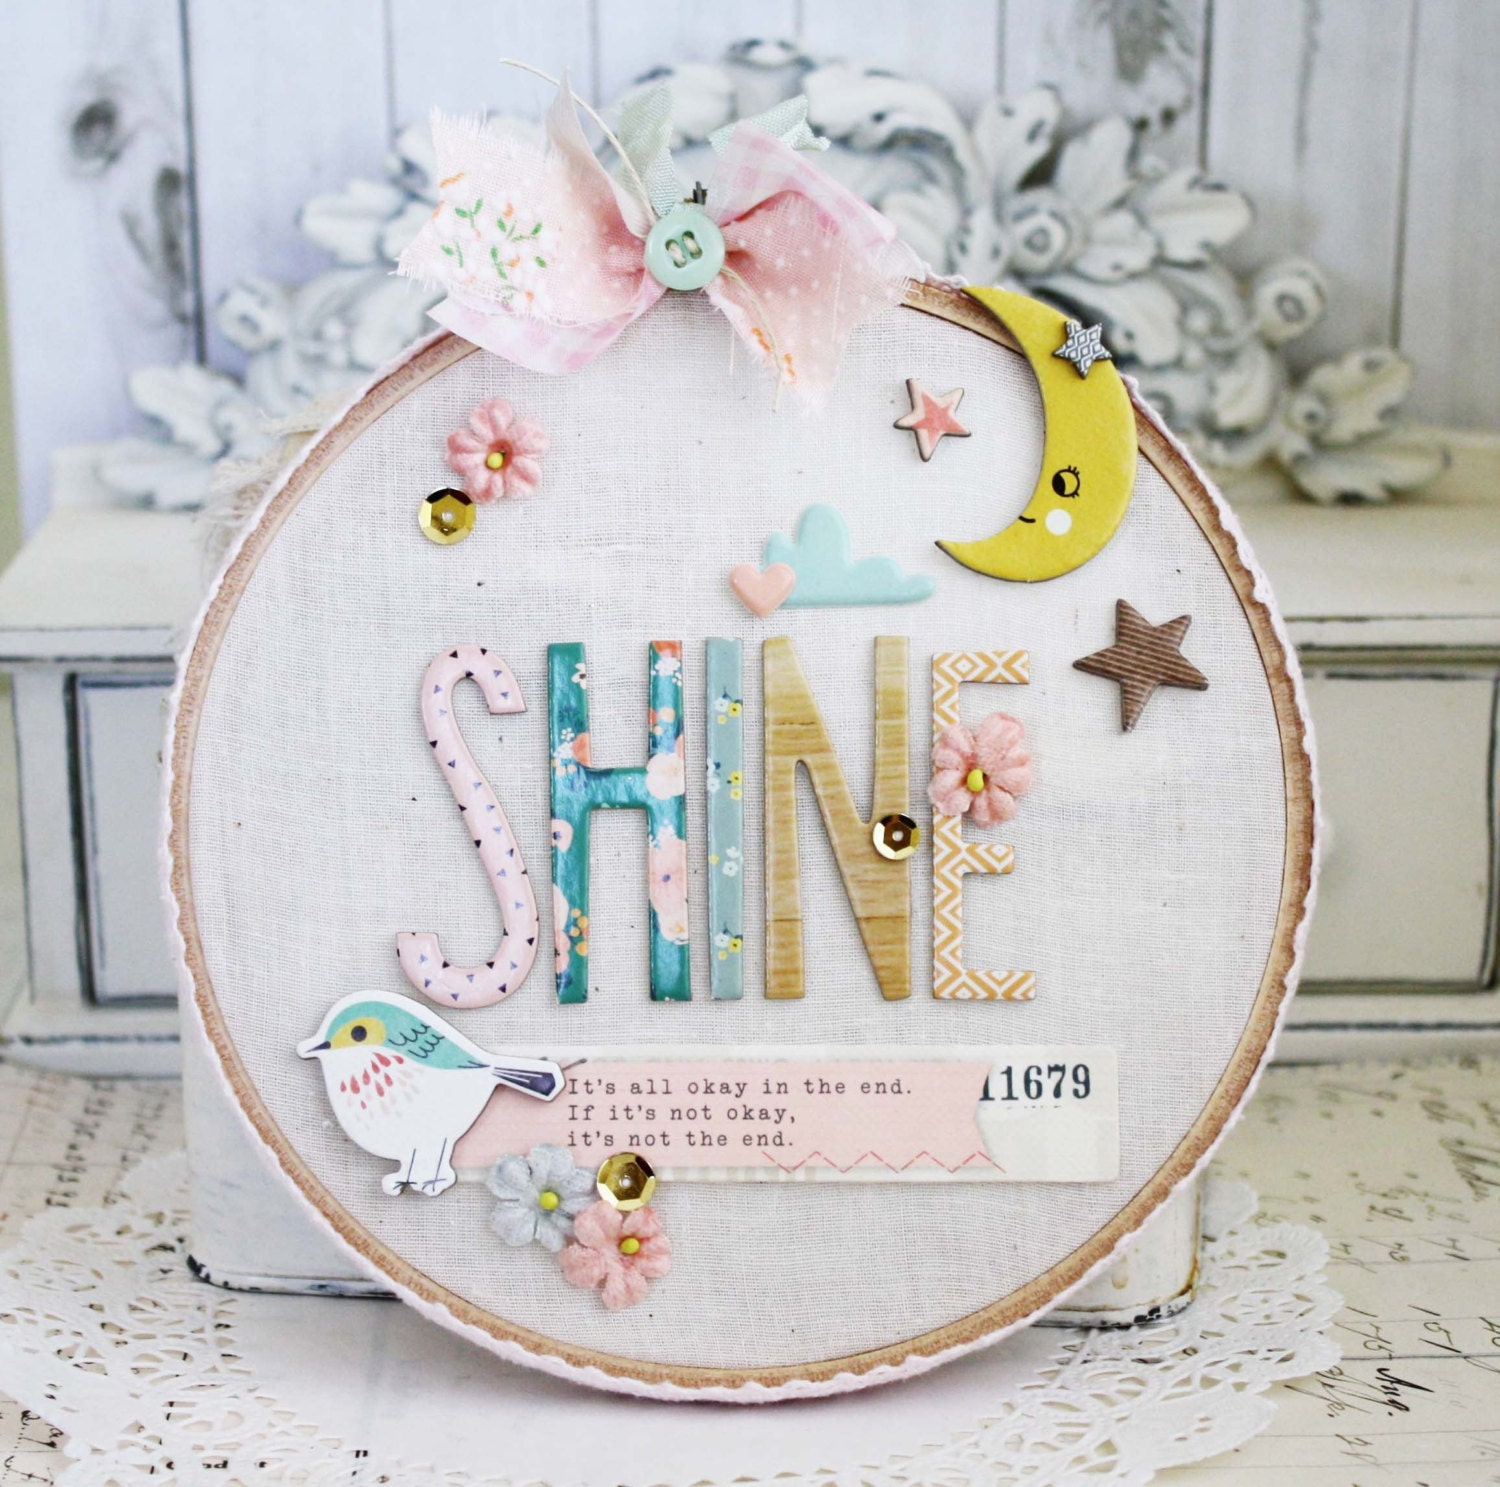 Shine altered embroidery hoop by lilybeanpaperie on etsy